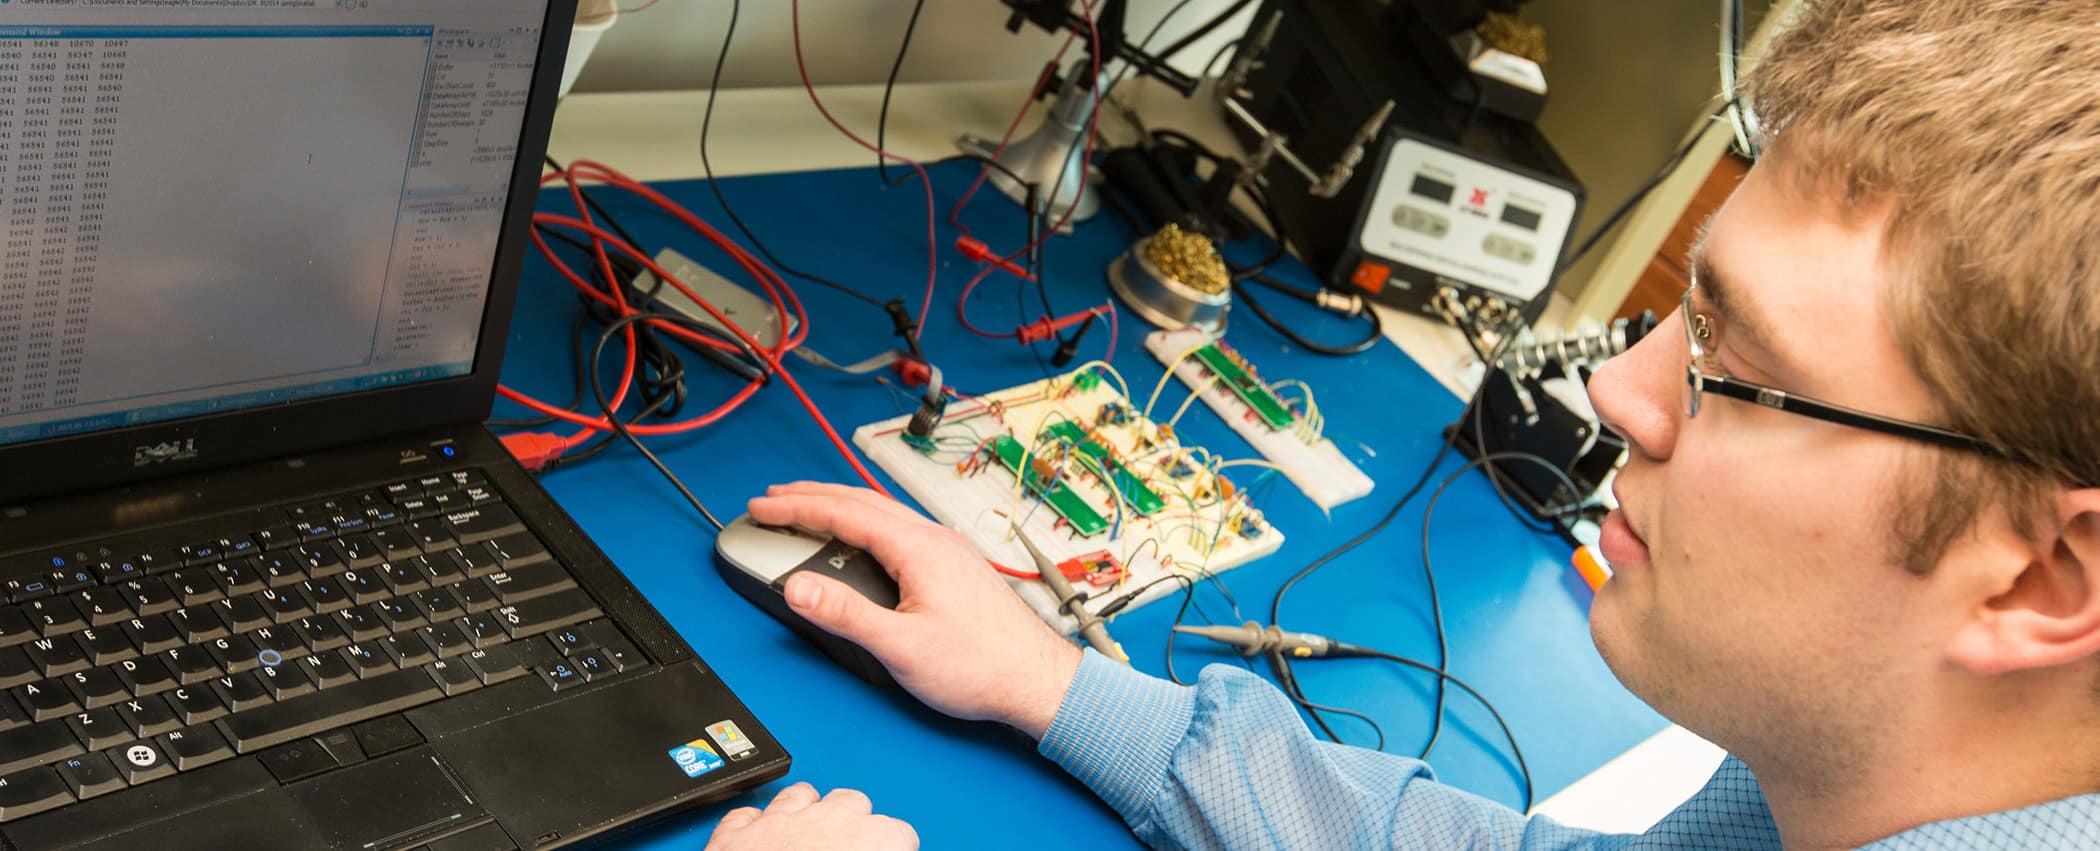 Electrical Engineering Technology Bachelor Degree